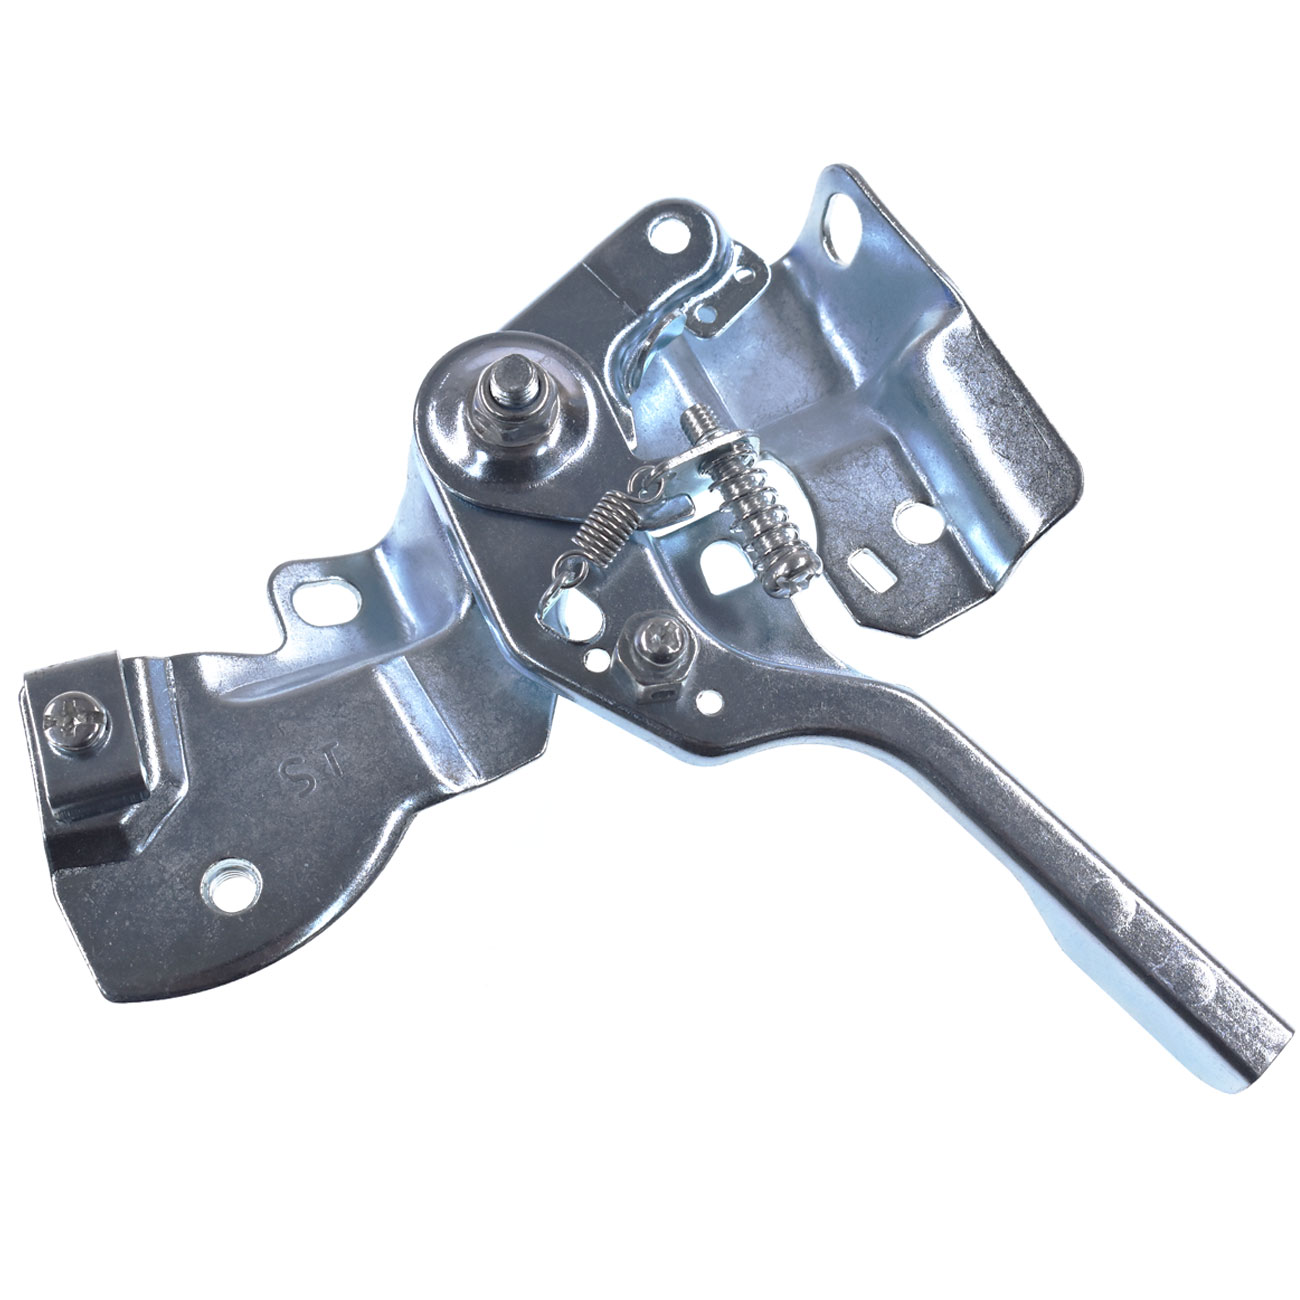 Throttle Control Lever Assembly Fits Honda GX140 GX160 GX200 EngineThrottle Control Lever Assembly Fits Honda GX140 GX160 GX200 Engine